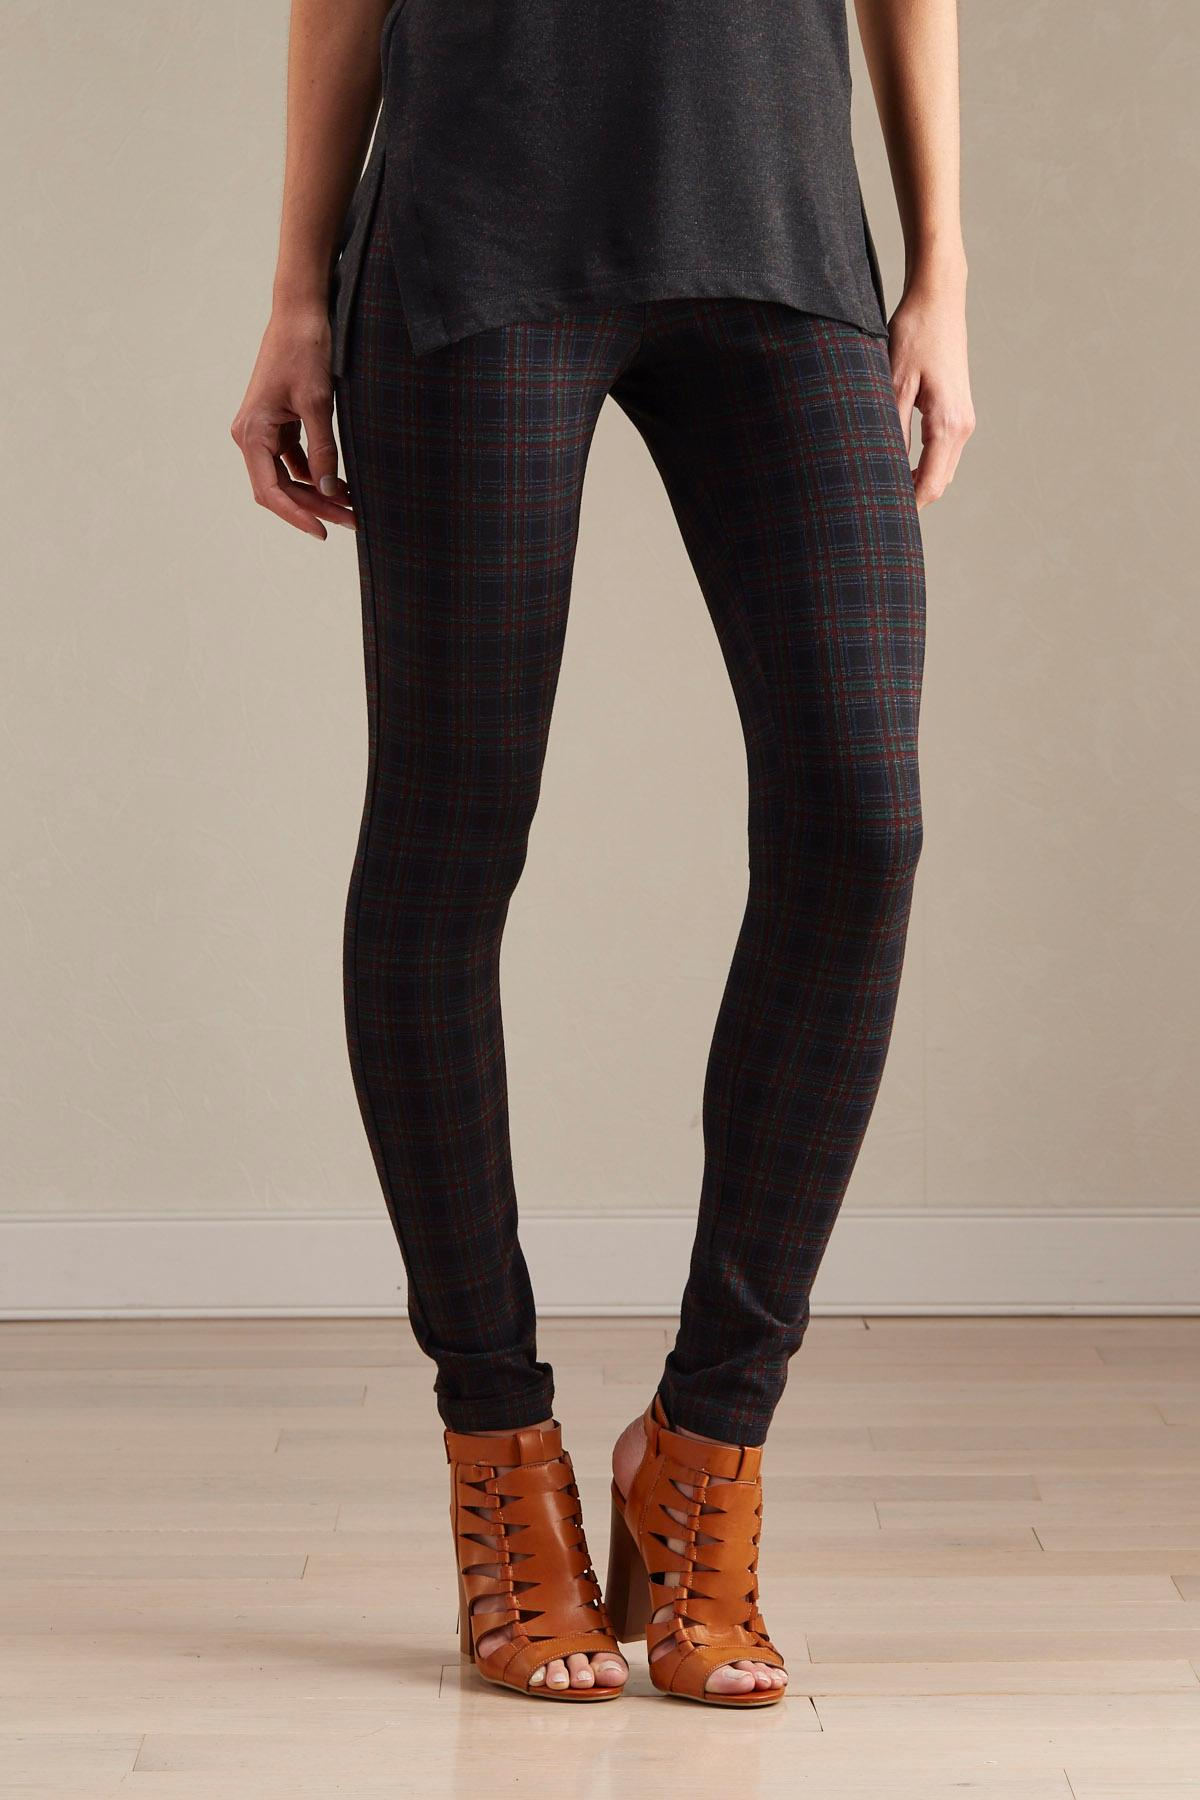 Plaid Ponte Knit Leggings